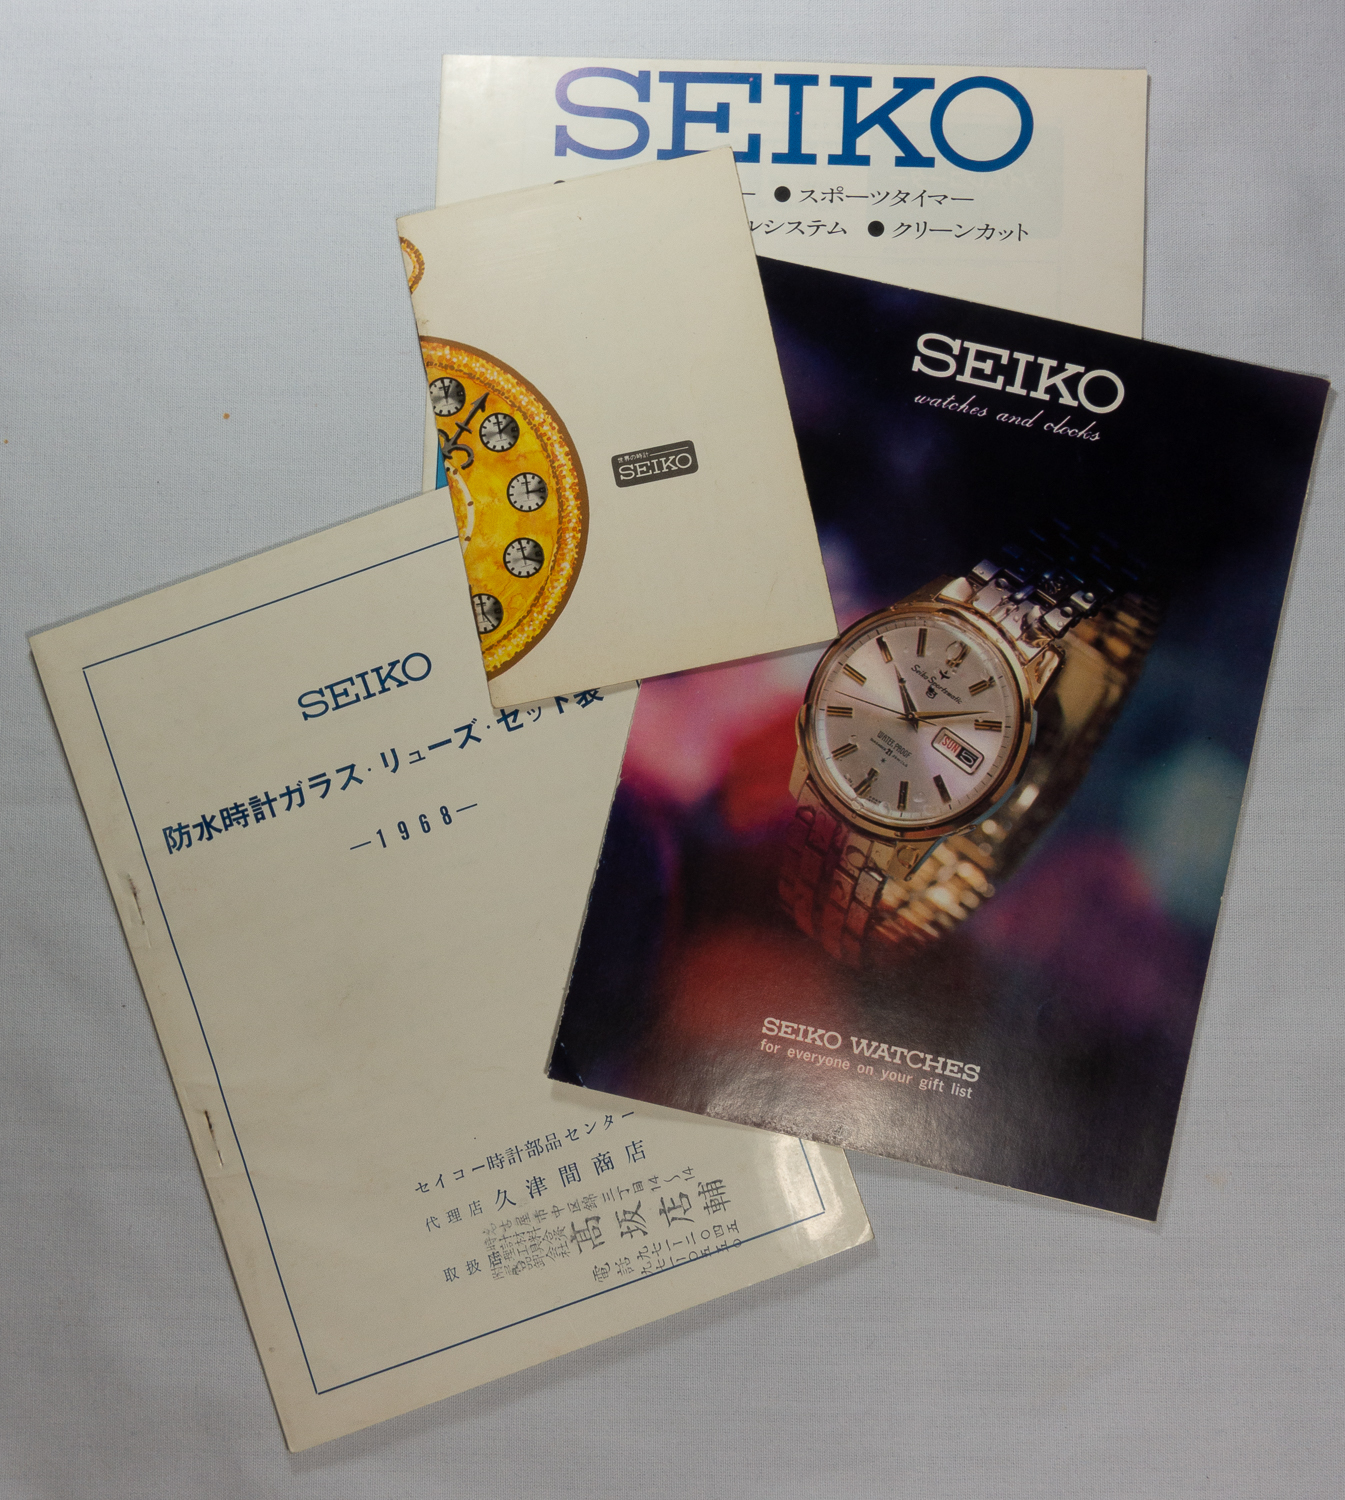 Seiko Brochures and Parts